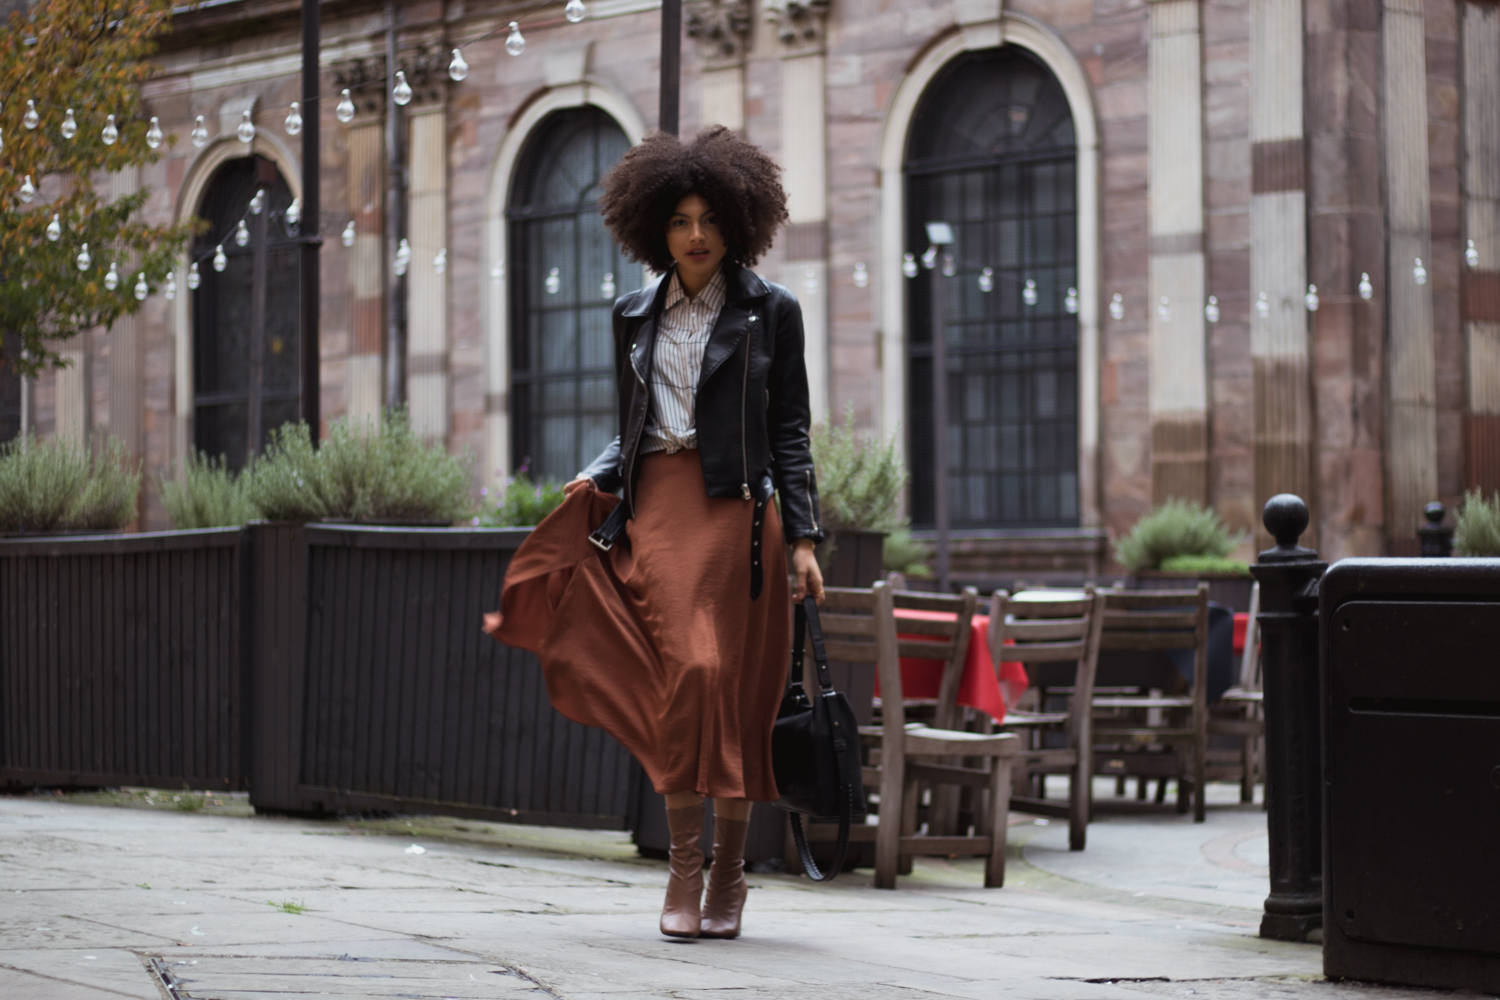 Fall Fashion Burnt Orange Midi Skirt and Biker Jacket Outfit